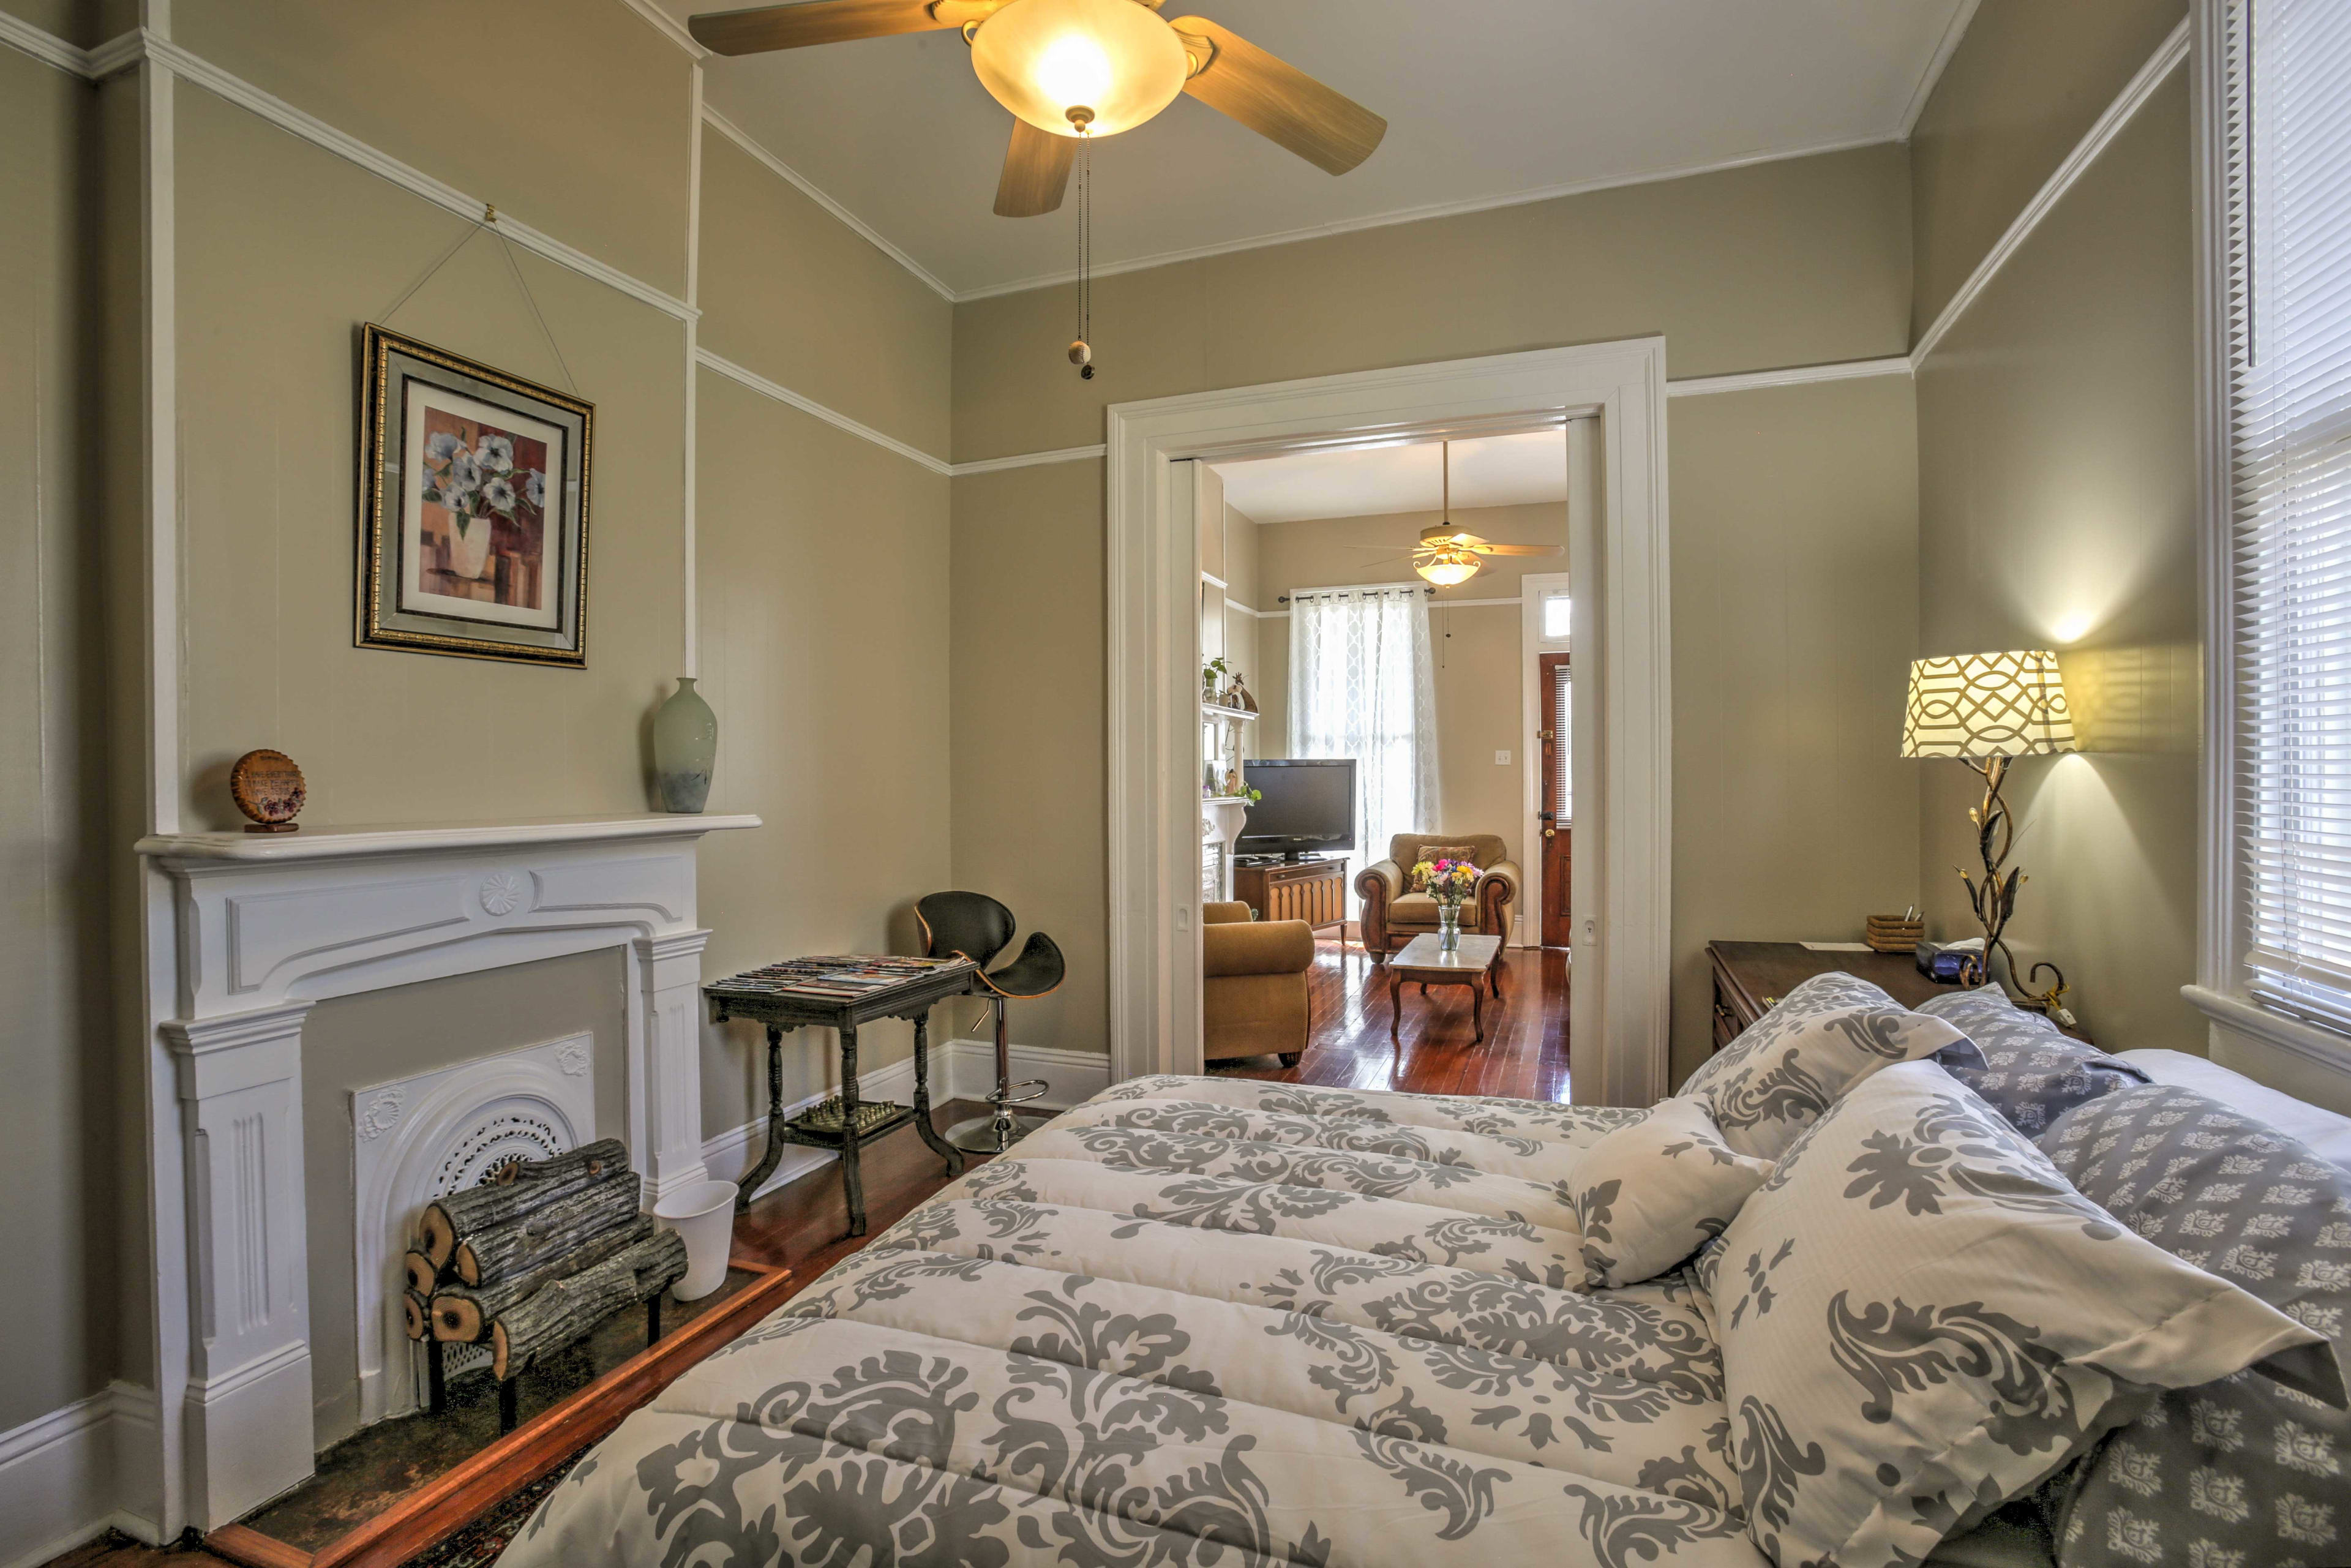 Two guests can sleep comfortably in the queen-sized bed in the first bedroom.